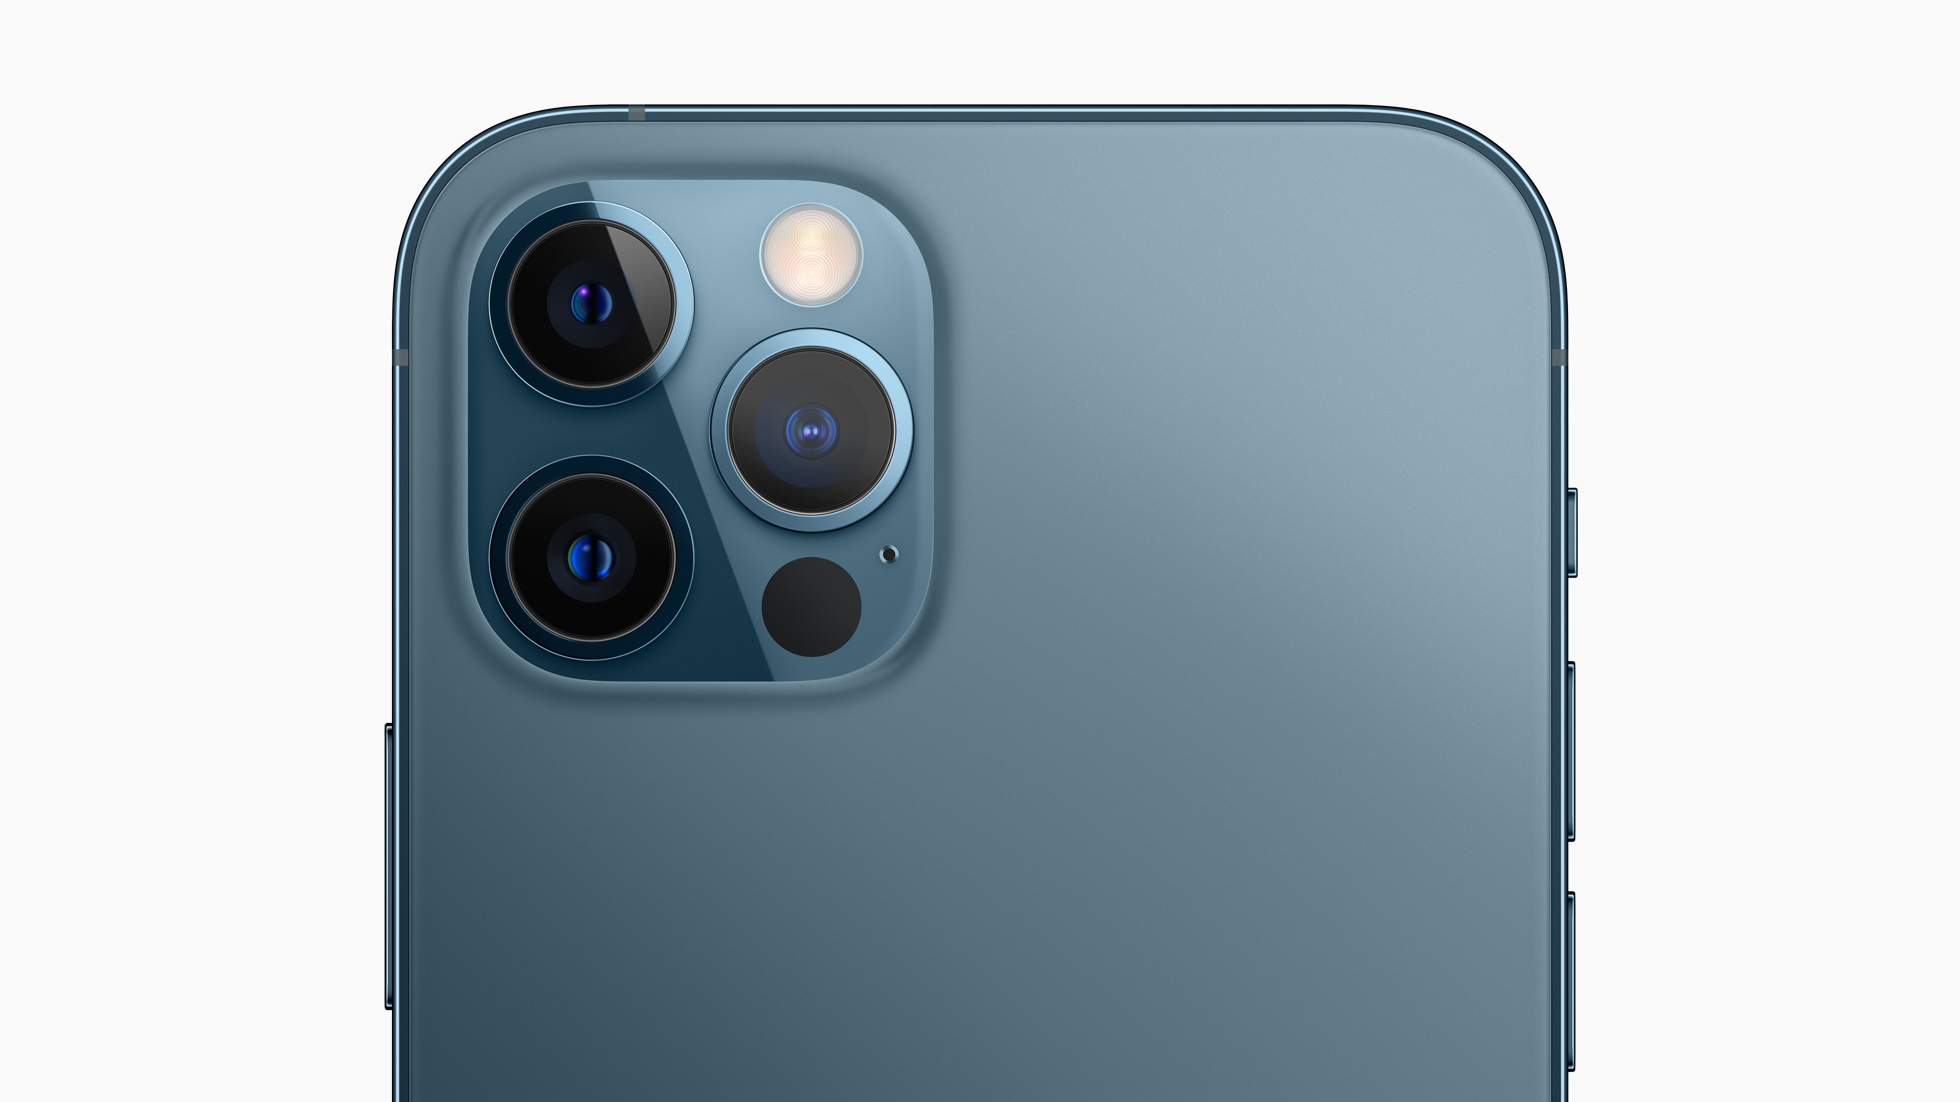 iPhone 12 Pro introduced! Here are the features and price 2